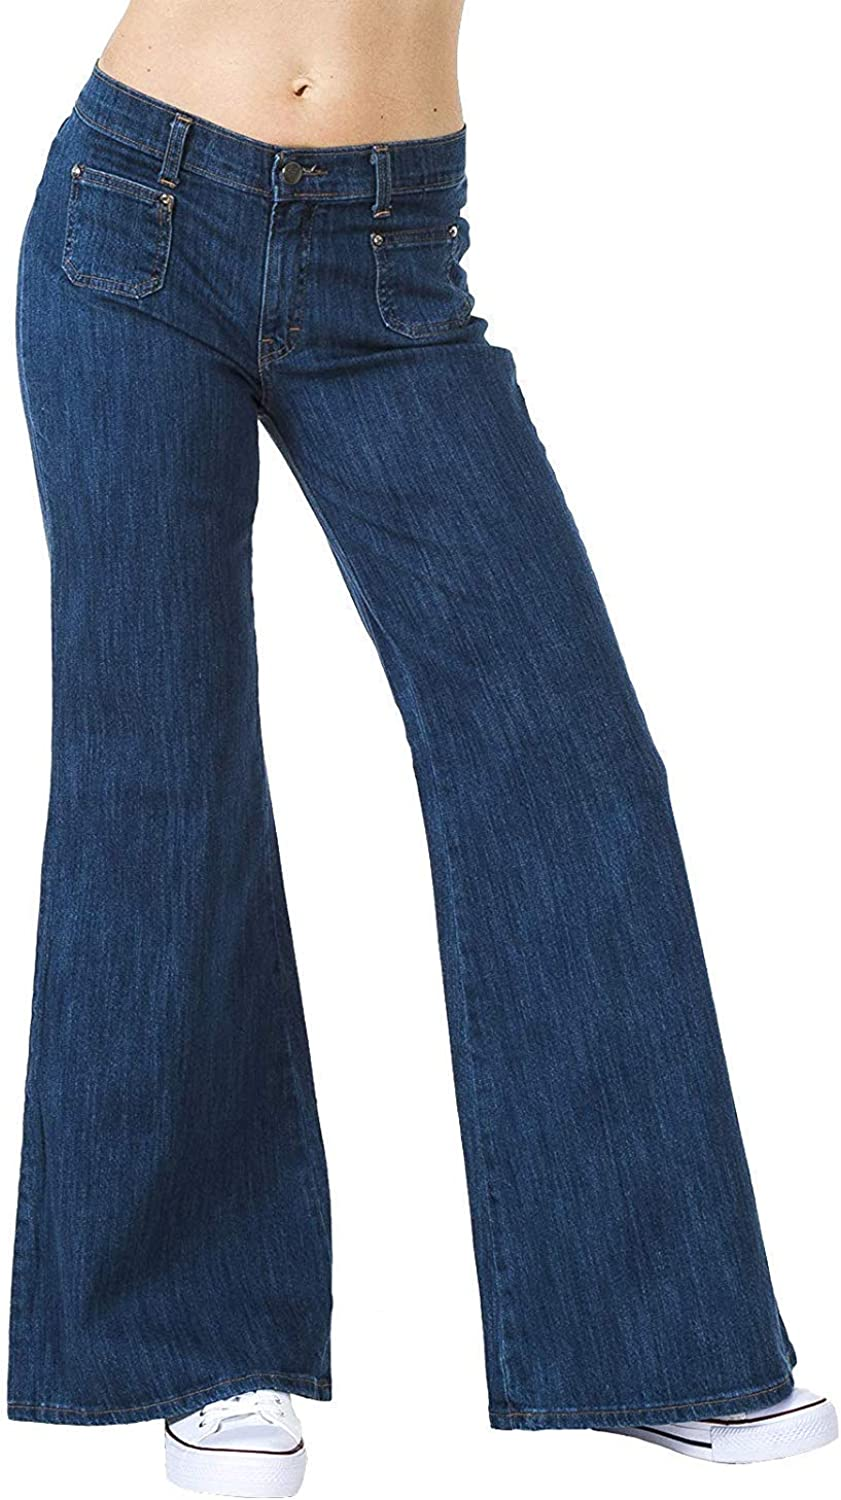 "Run & Fly Women's 60S 70S Stretch Wide Bell Bottoms Flares Hippie Vintage UK 20/US 16-33"" Leg, Long Blue"